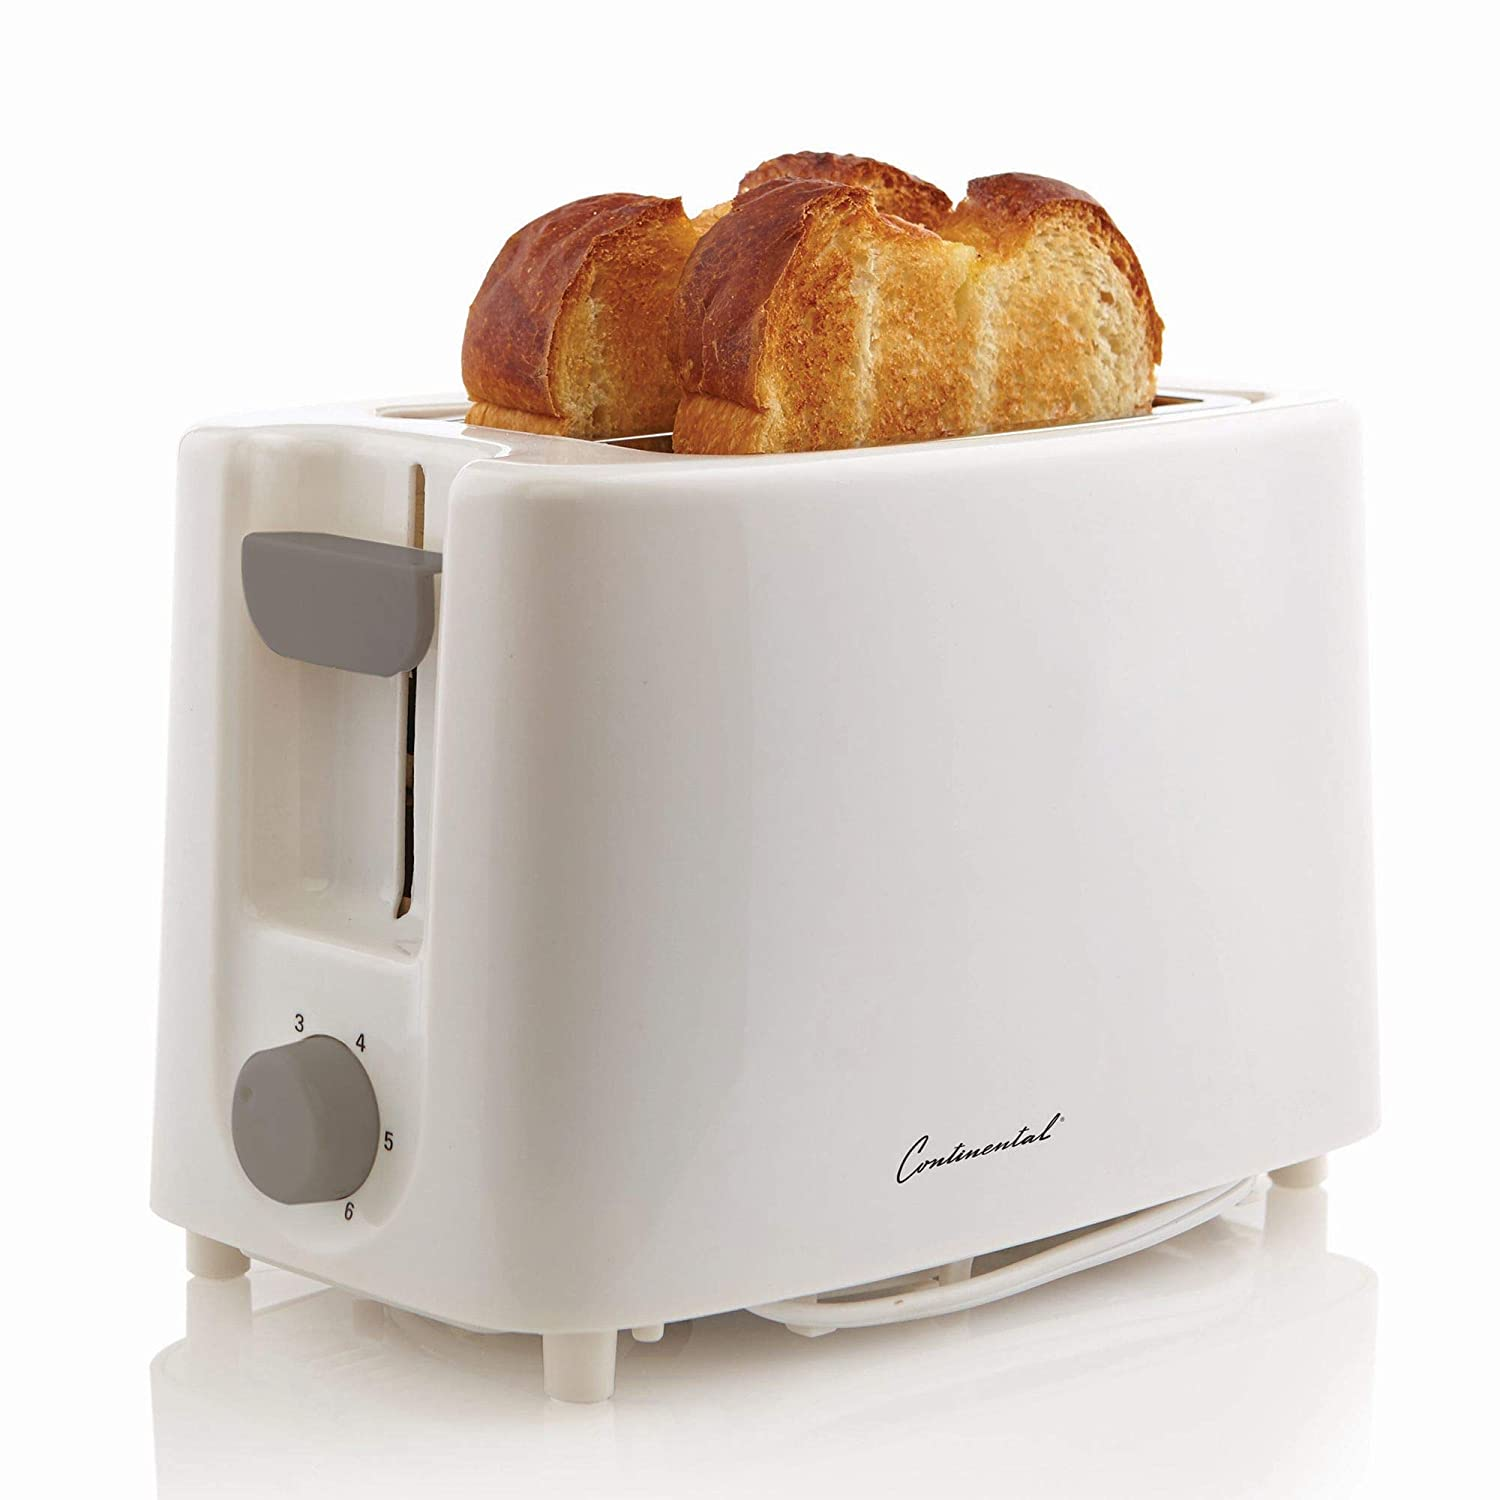 Continental Electric CE-TT011 Electric Toaster, 2 Slice, White